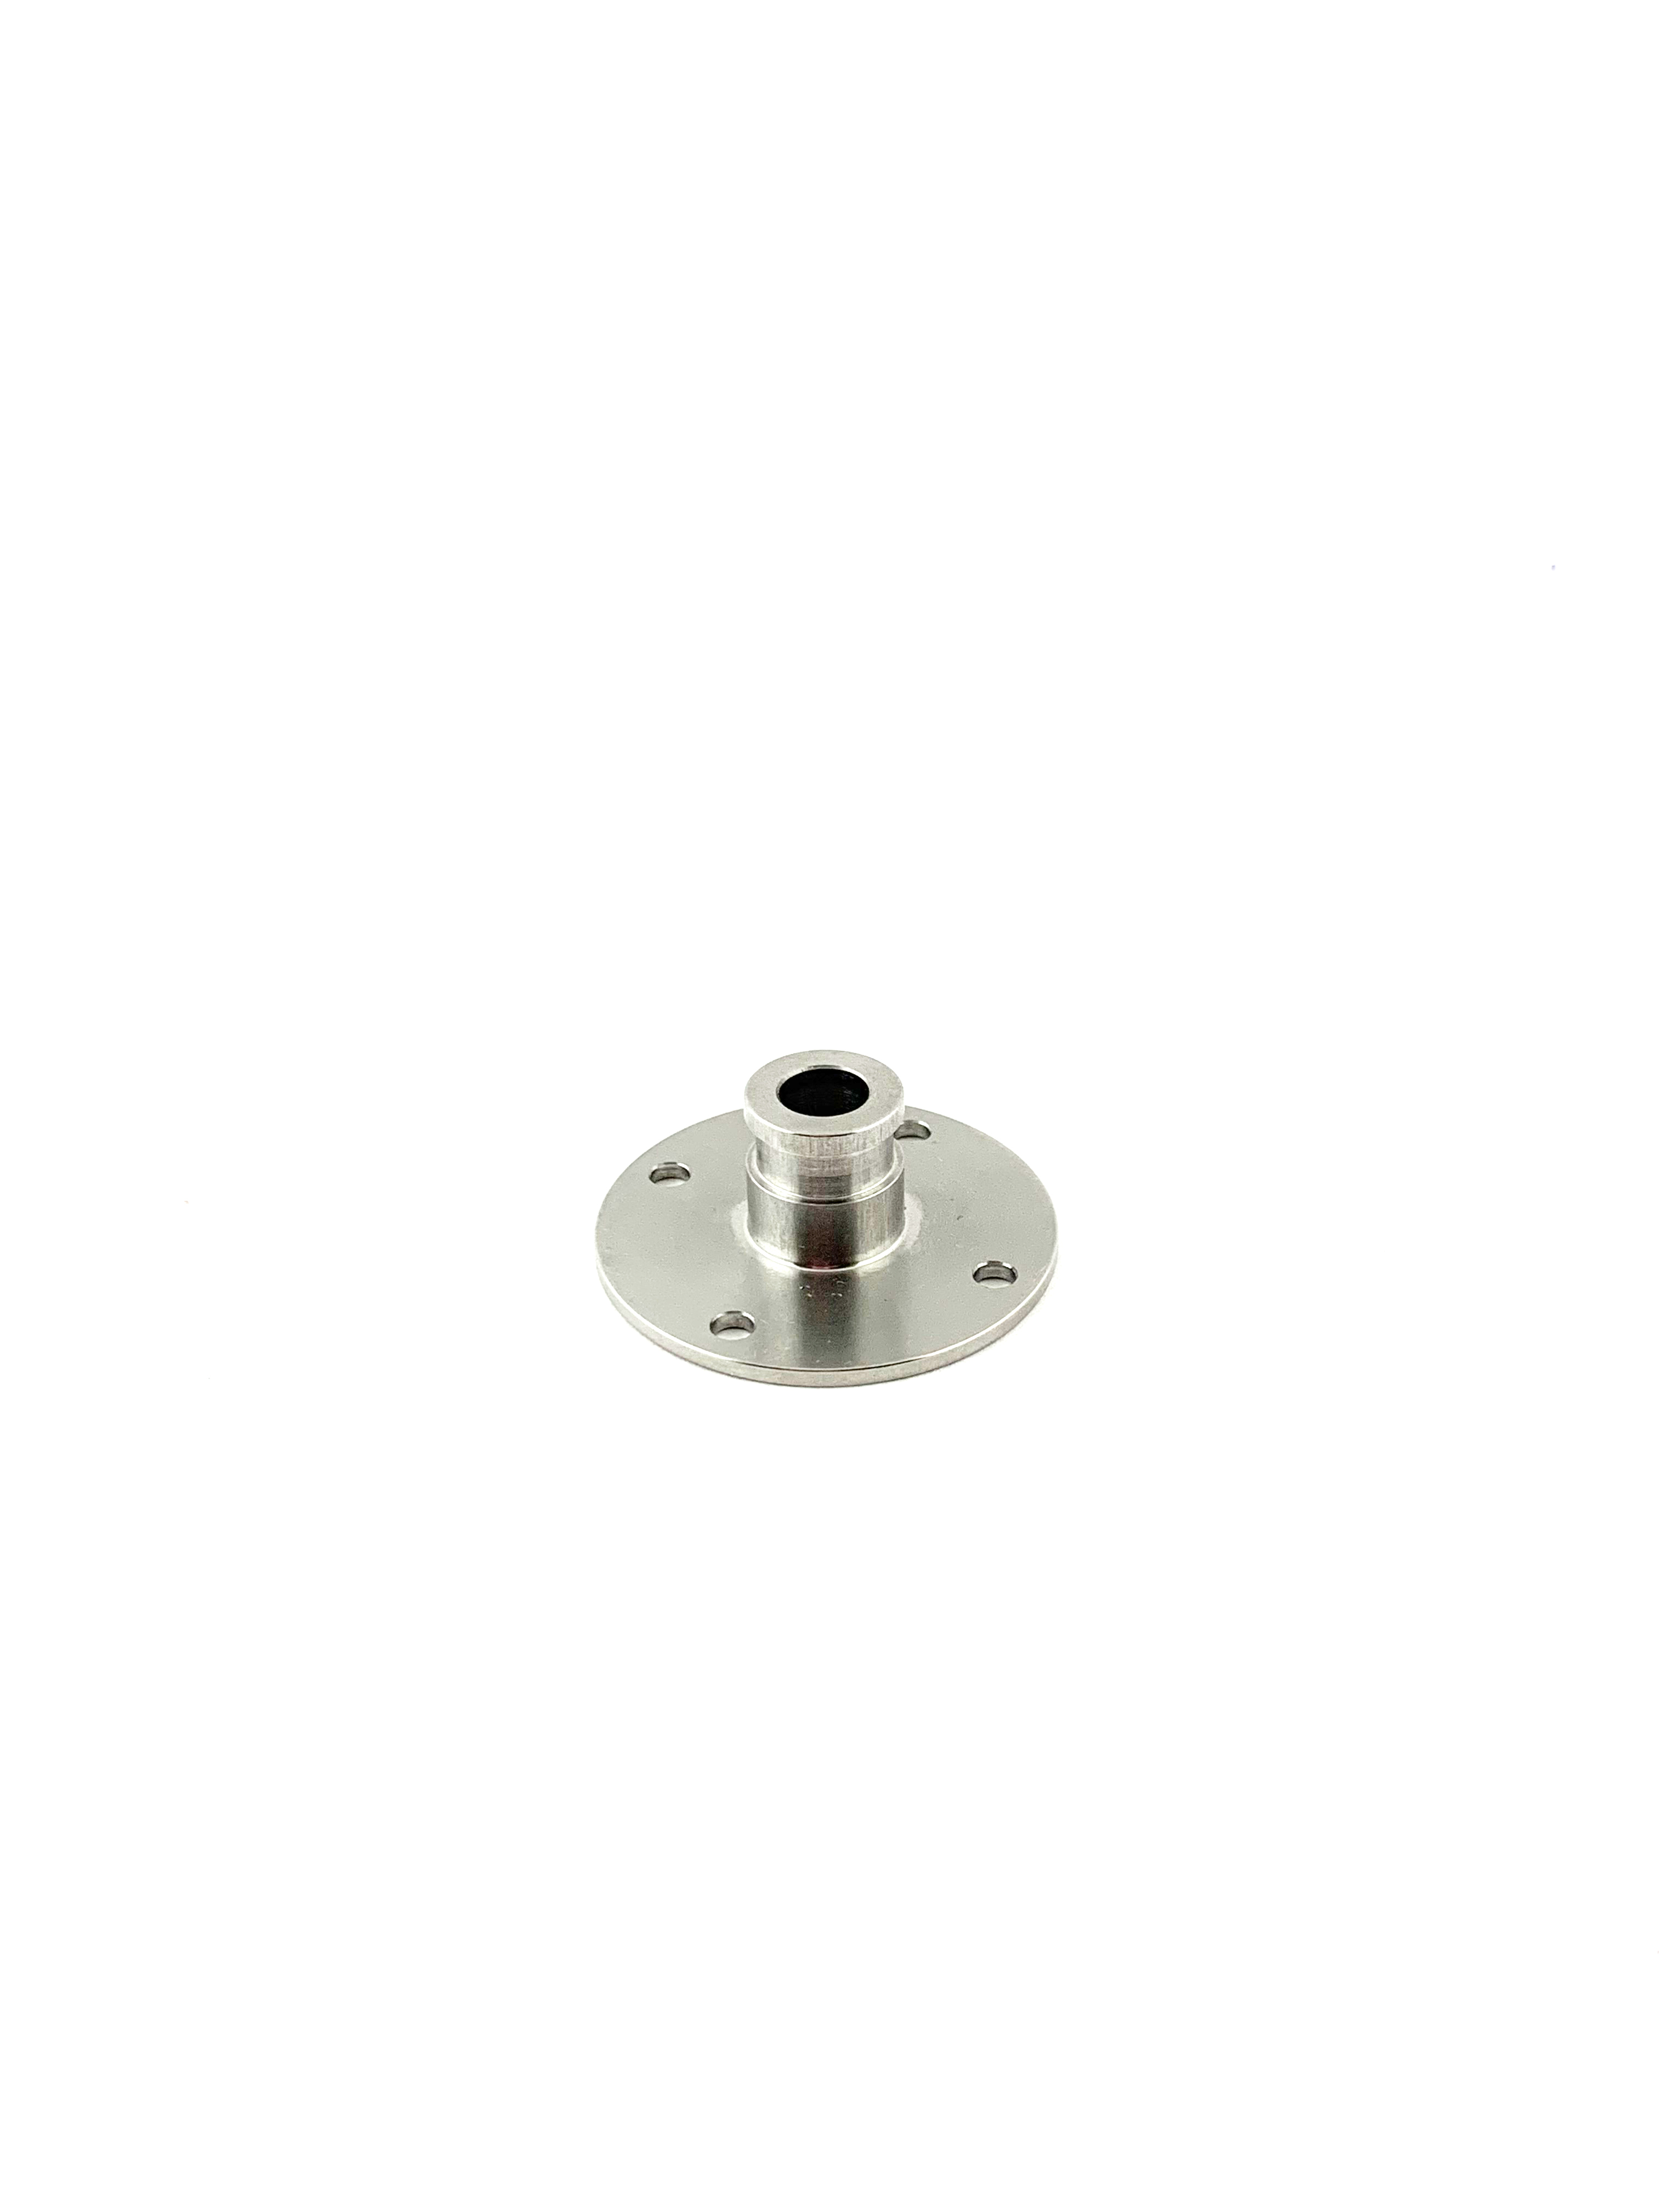 Tether end plate